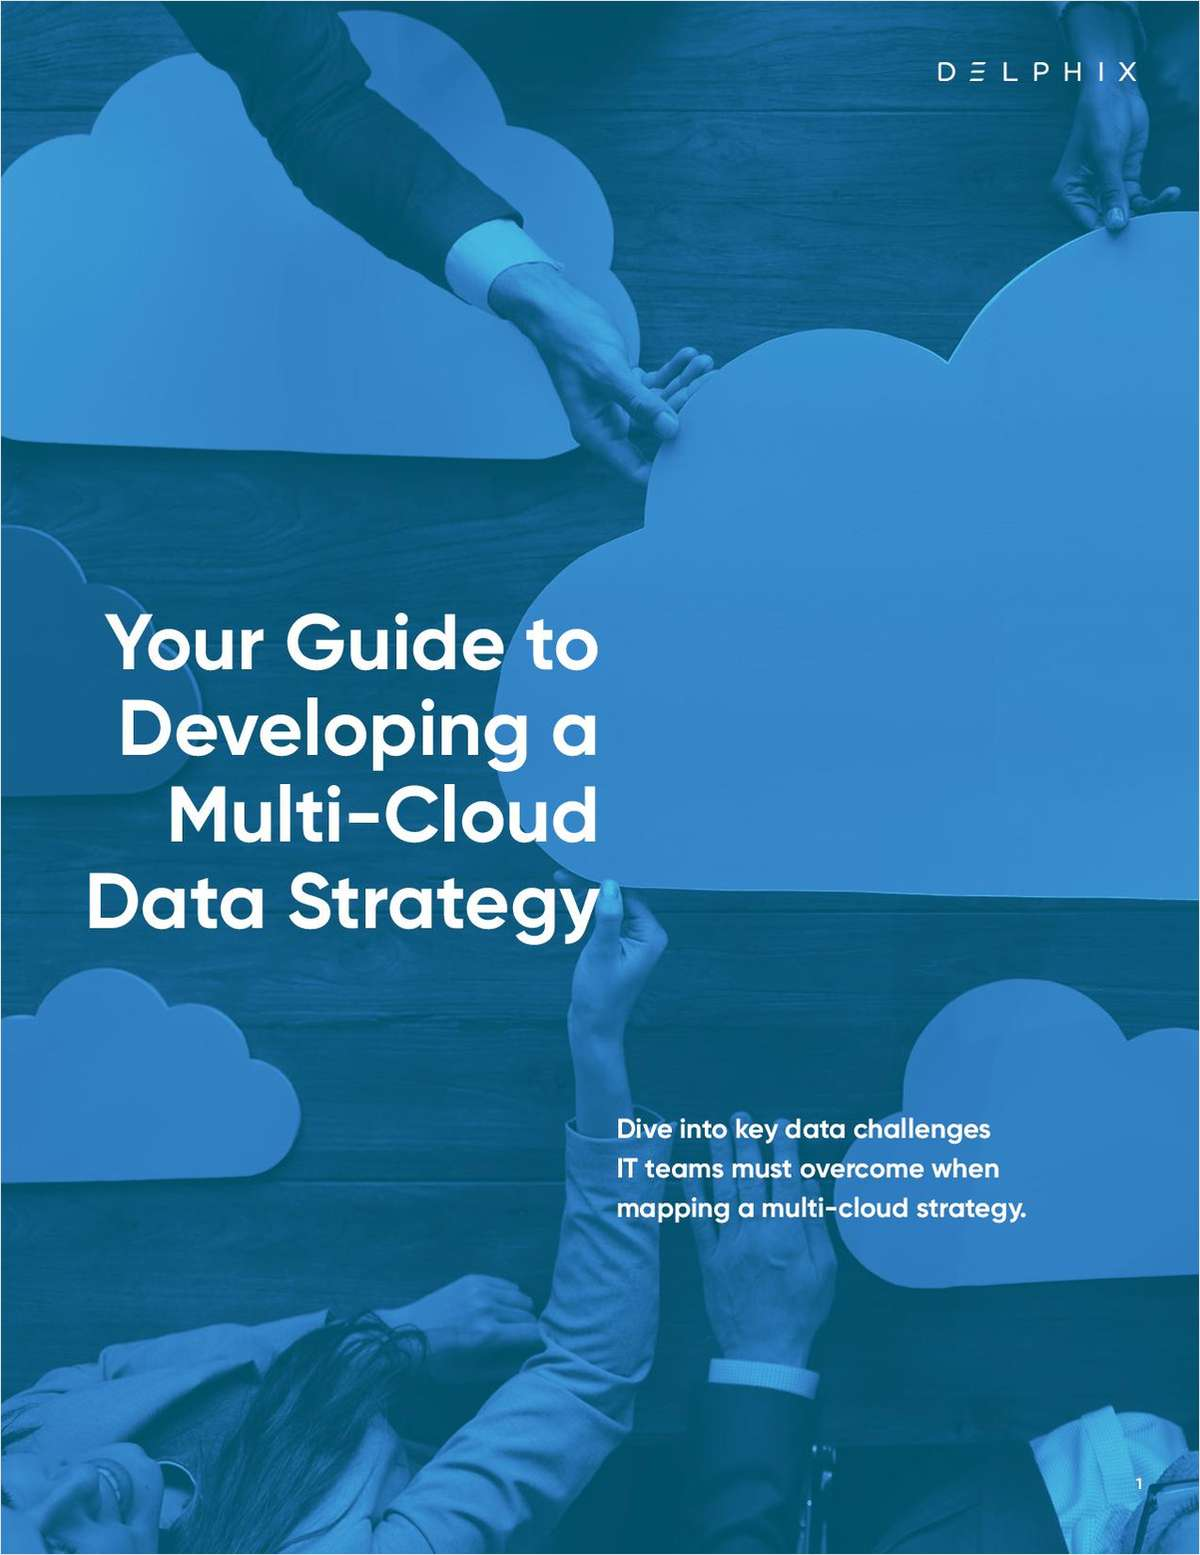 Your Guide to Developing a Multi-Cloud Data Strategy